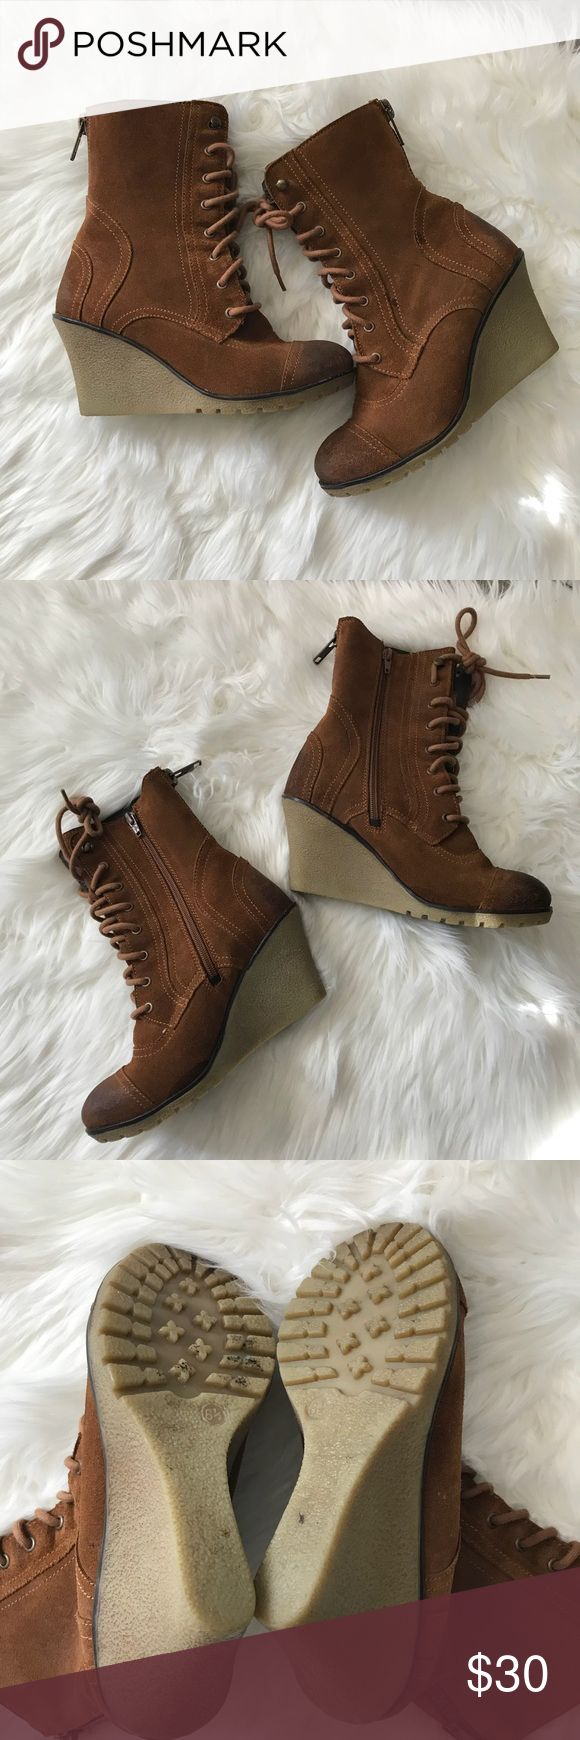 Skechers Wedge Leather Boots - Sz 6.5 Excellent pre-loved condition leather Wedge Boots by Skechers. Size 6.5. They zip up on the inside making it easy to put them on. See pics and don't hesitate to ask any questions. Skechers Shoes Ankle Boots & Booties